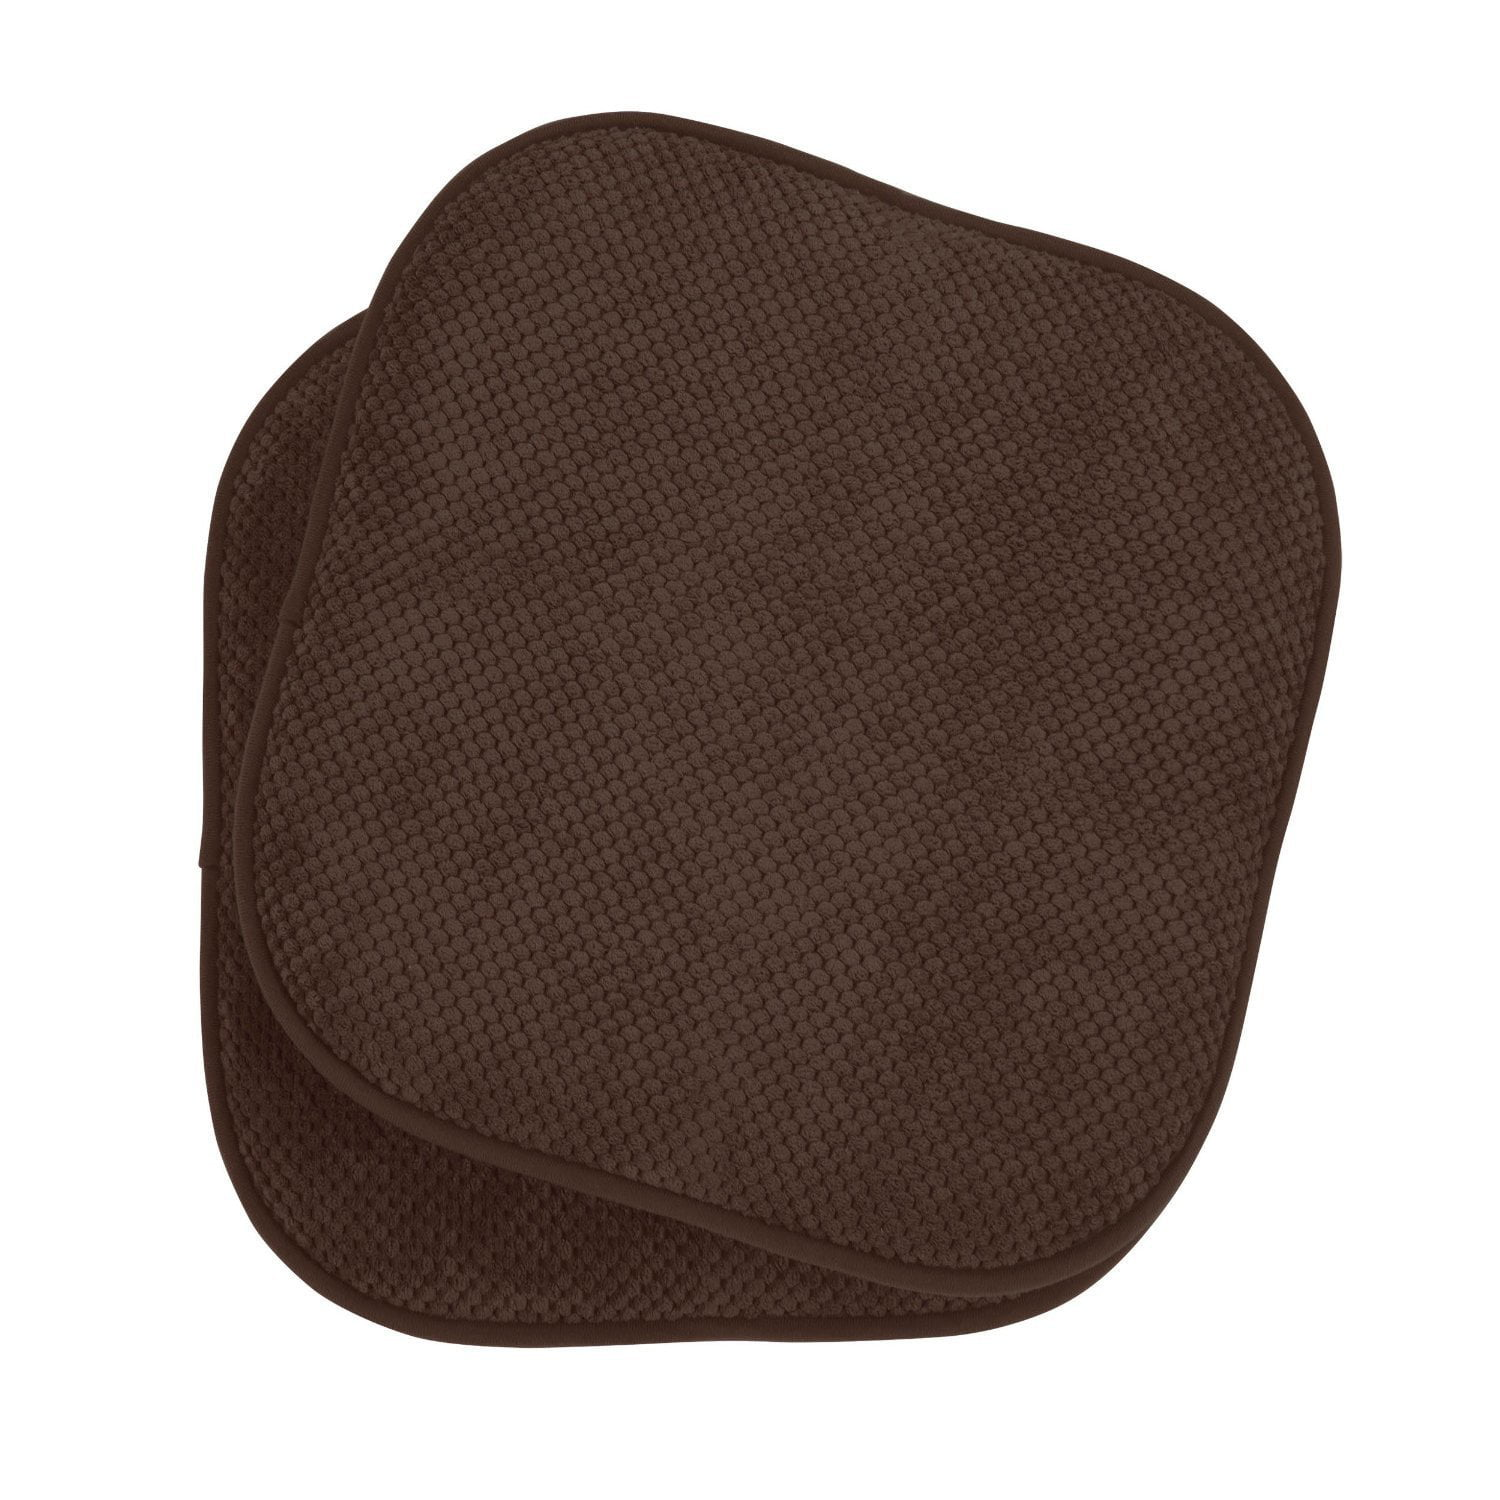 2 Pack: GoodGram Non Slip Ultra Comfort Memory Foam Chair Pads Brown by GoodGram